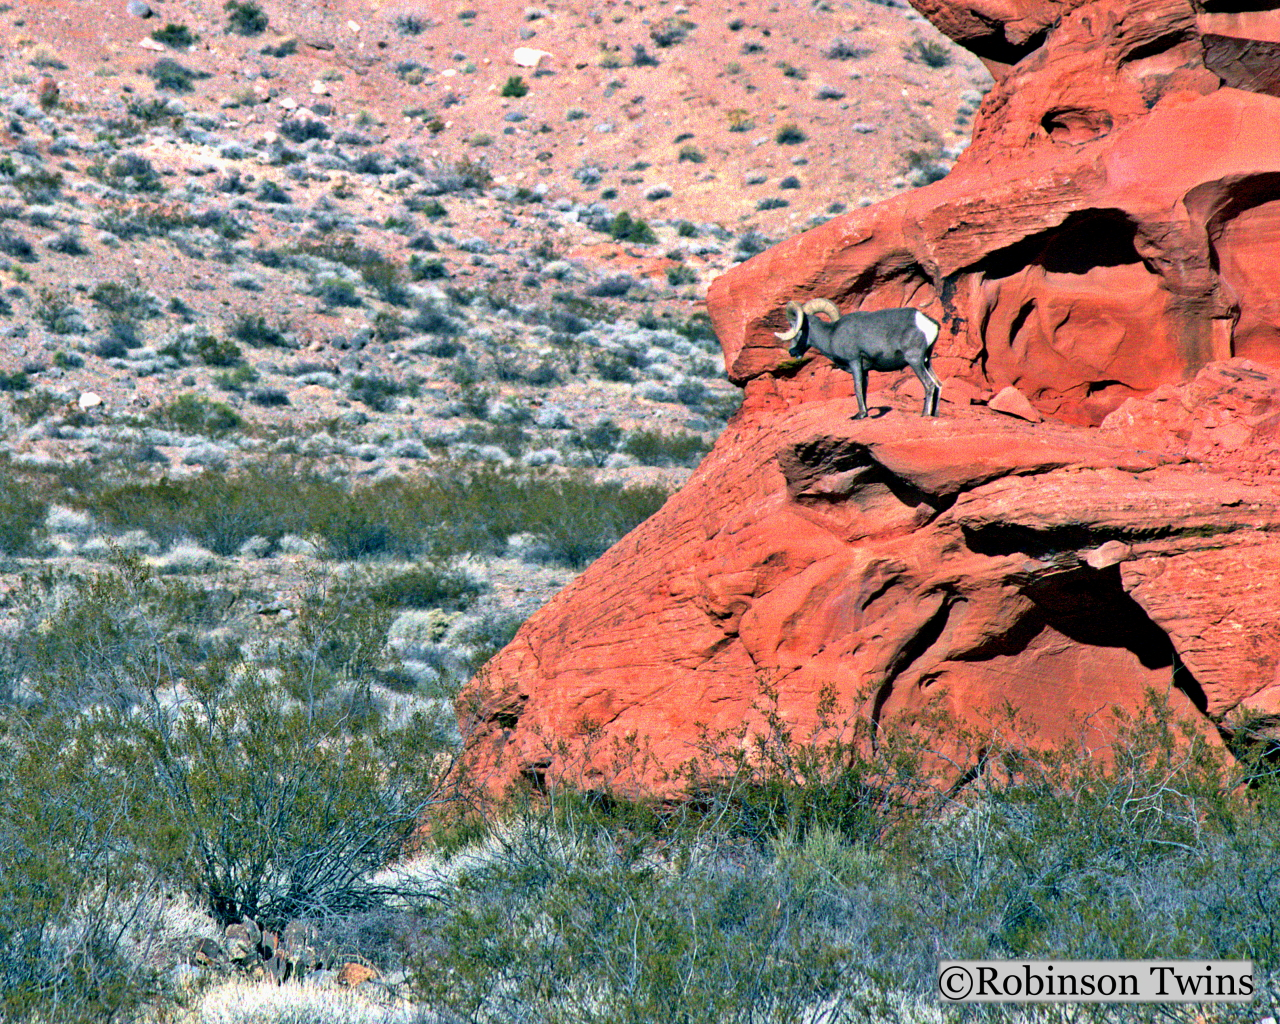 Robinson Twins Photo Gallery Desert Bighorn Sheep On Red Sandstone Valley Of Fire Nevada